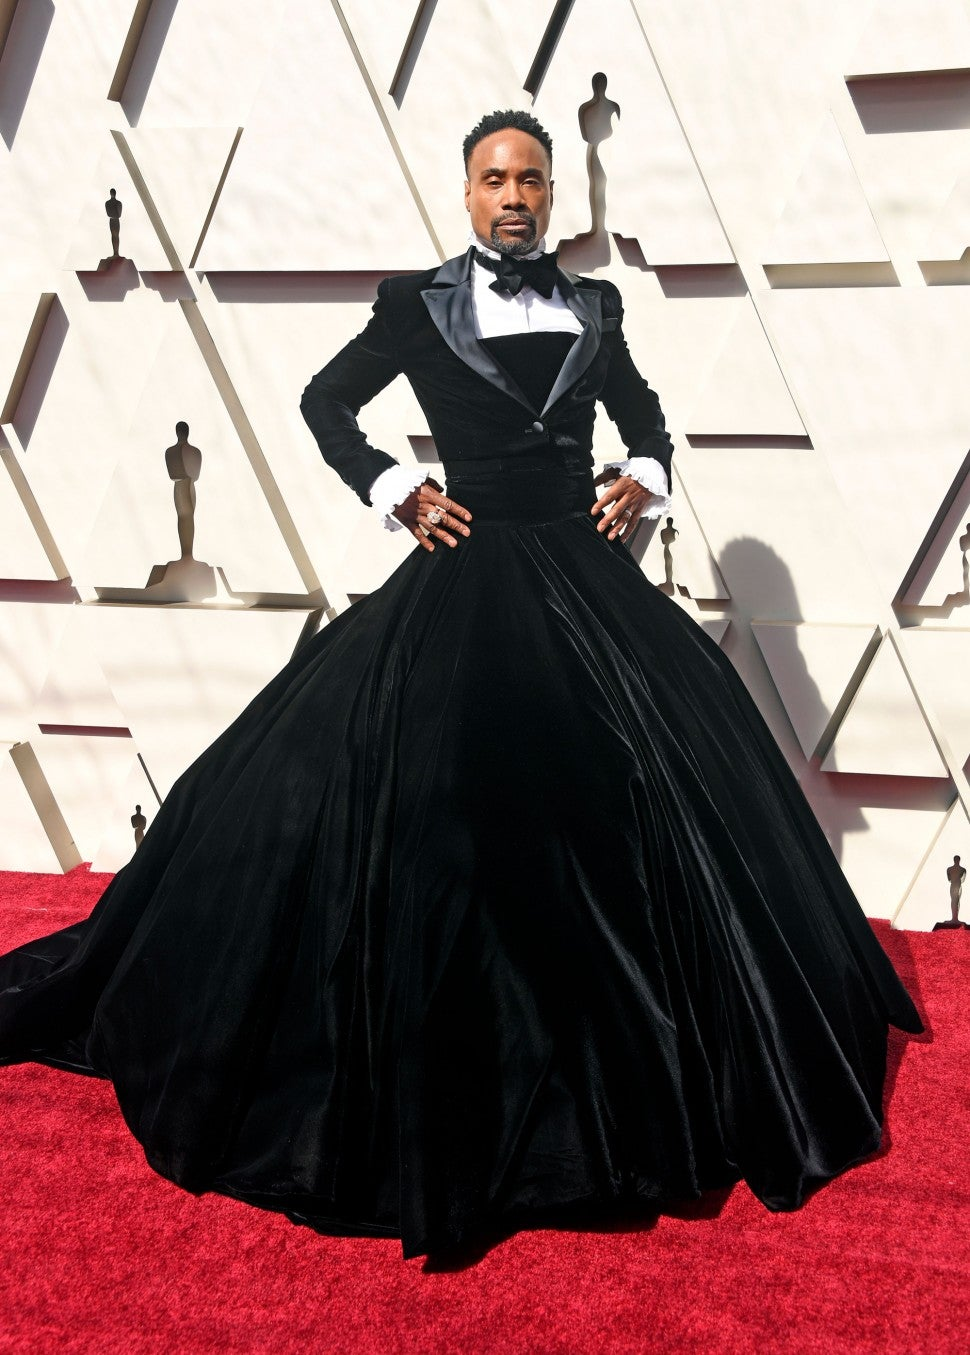 billy porter at 2019 oscars